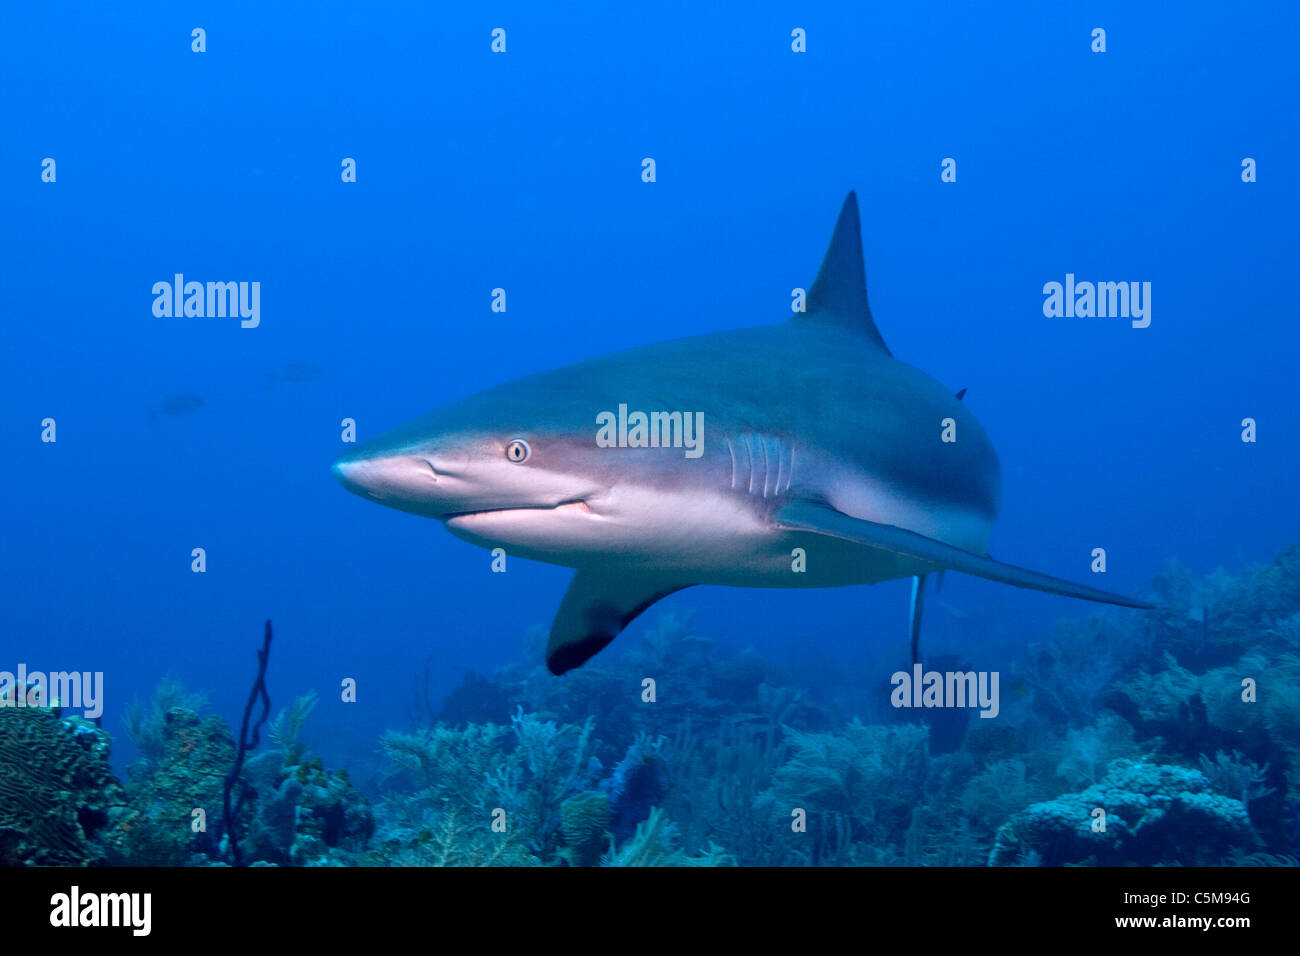 A Caribbean Reef Shark swims by a diver at Roatan,off the coast of Honduras. - Stock Image